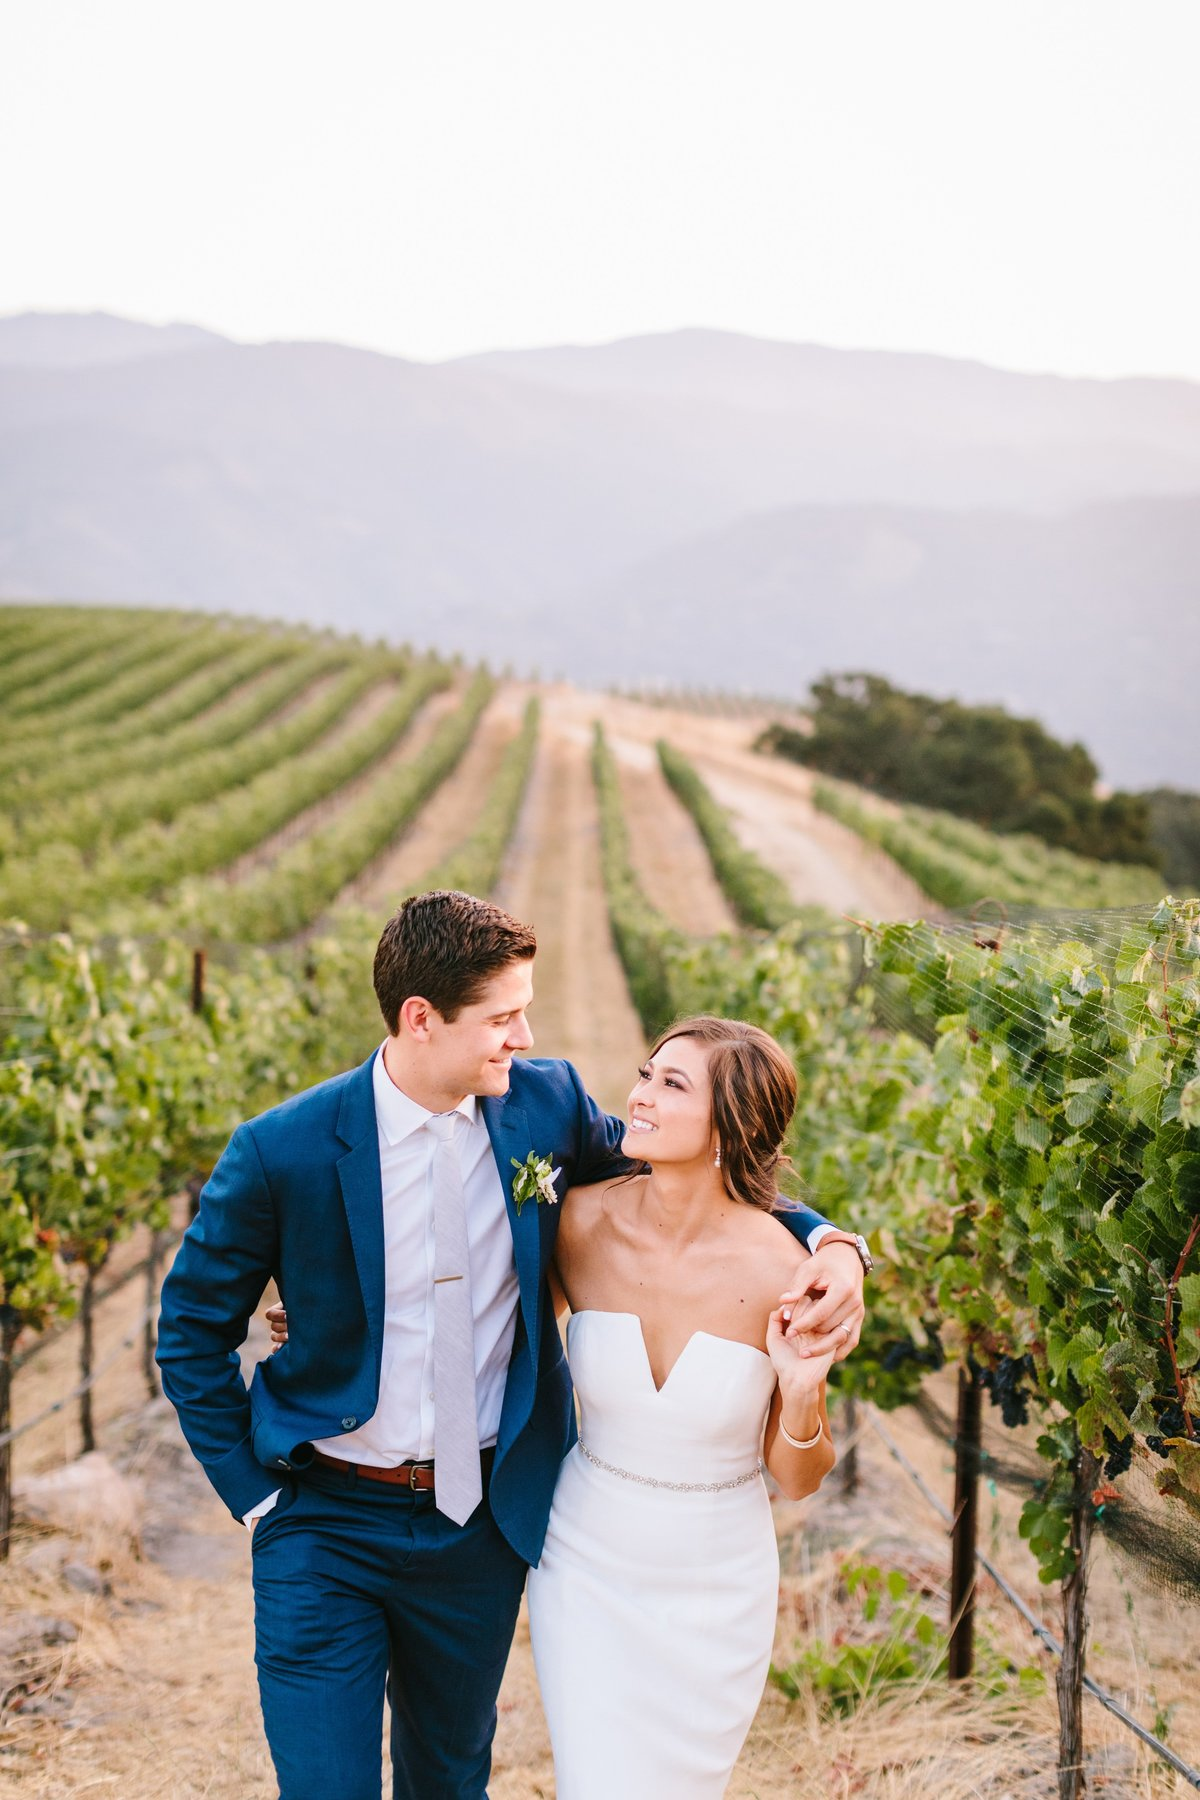 Best California Wedding Photographer-Jodee Debes Photography-354